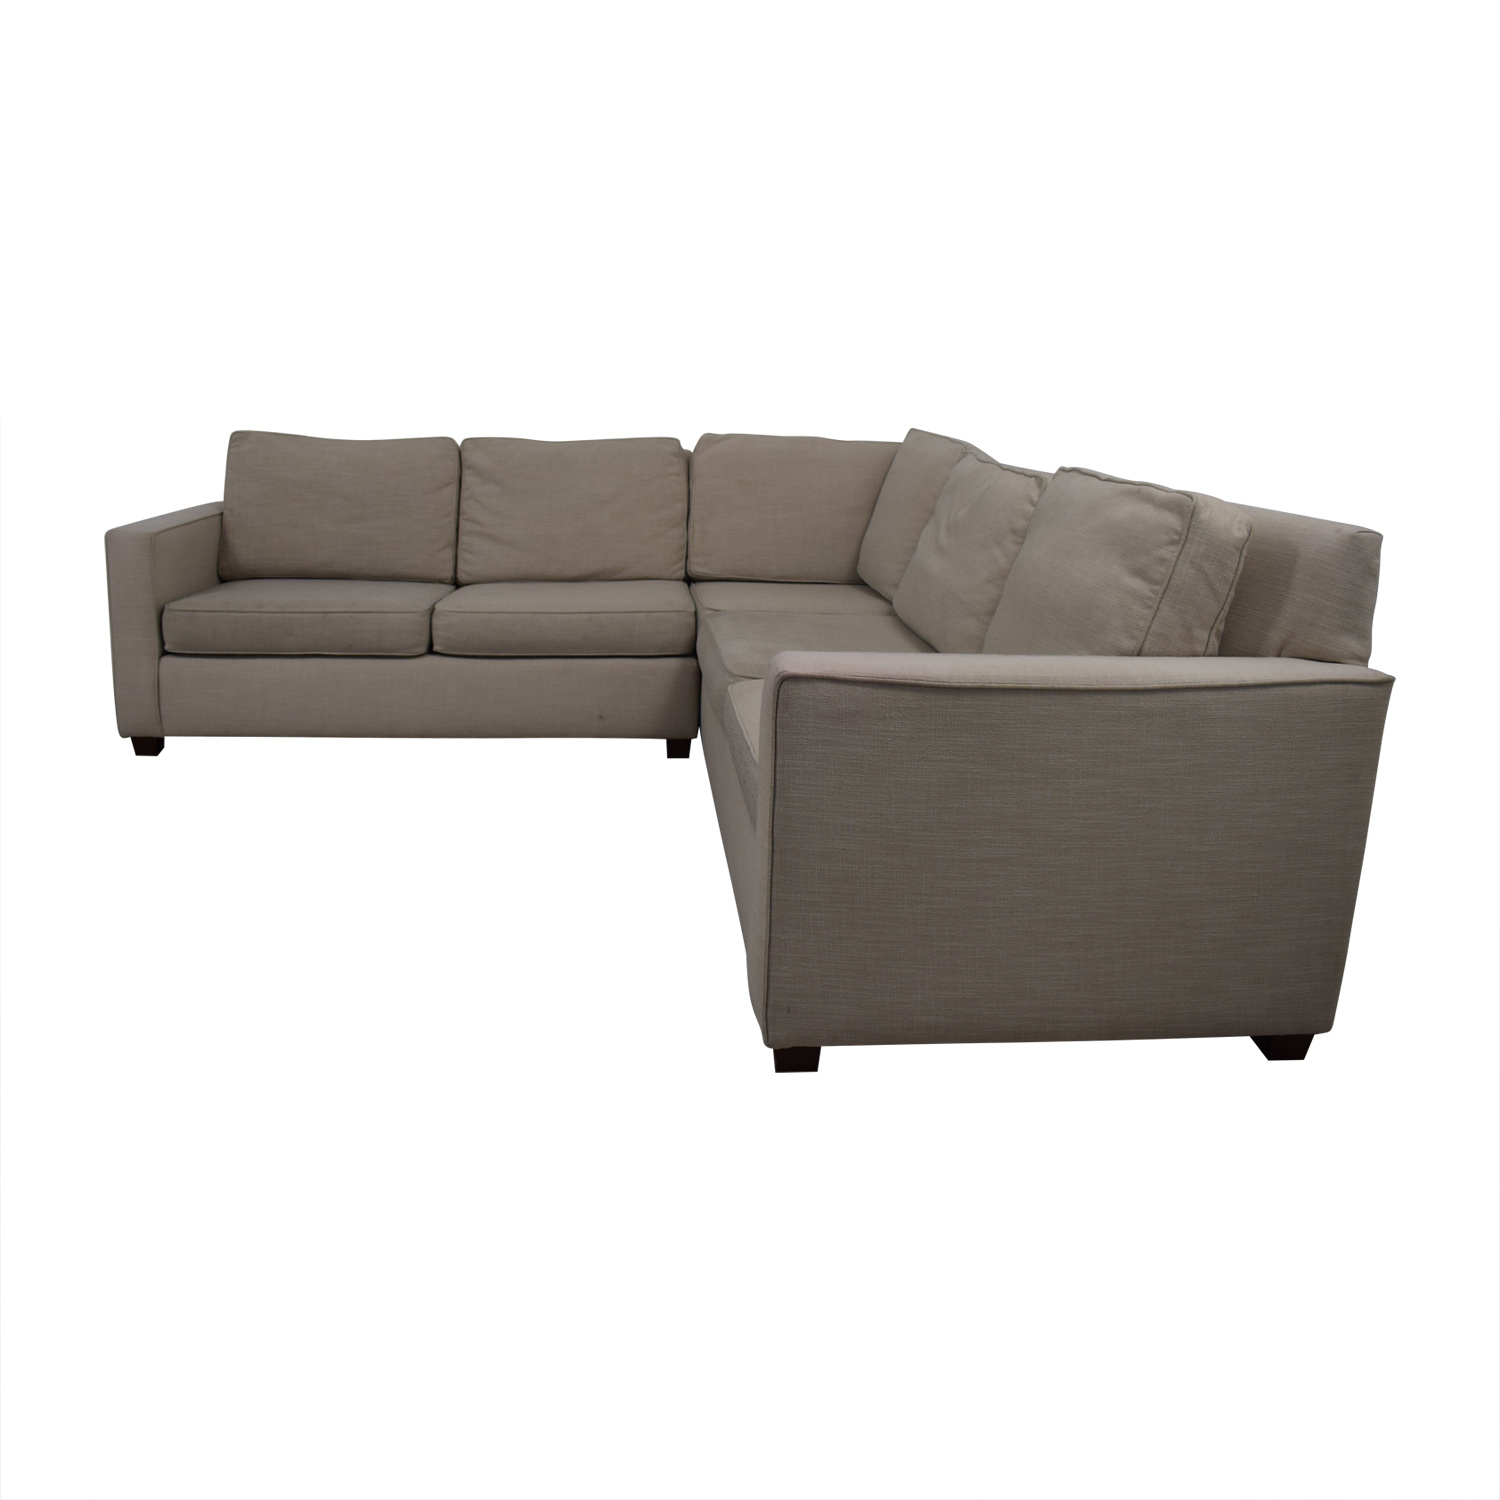 West Elm West Elm Henry Beige L-Shaped Sectional used